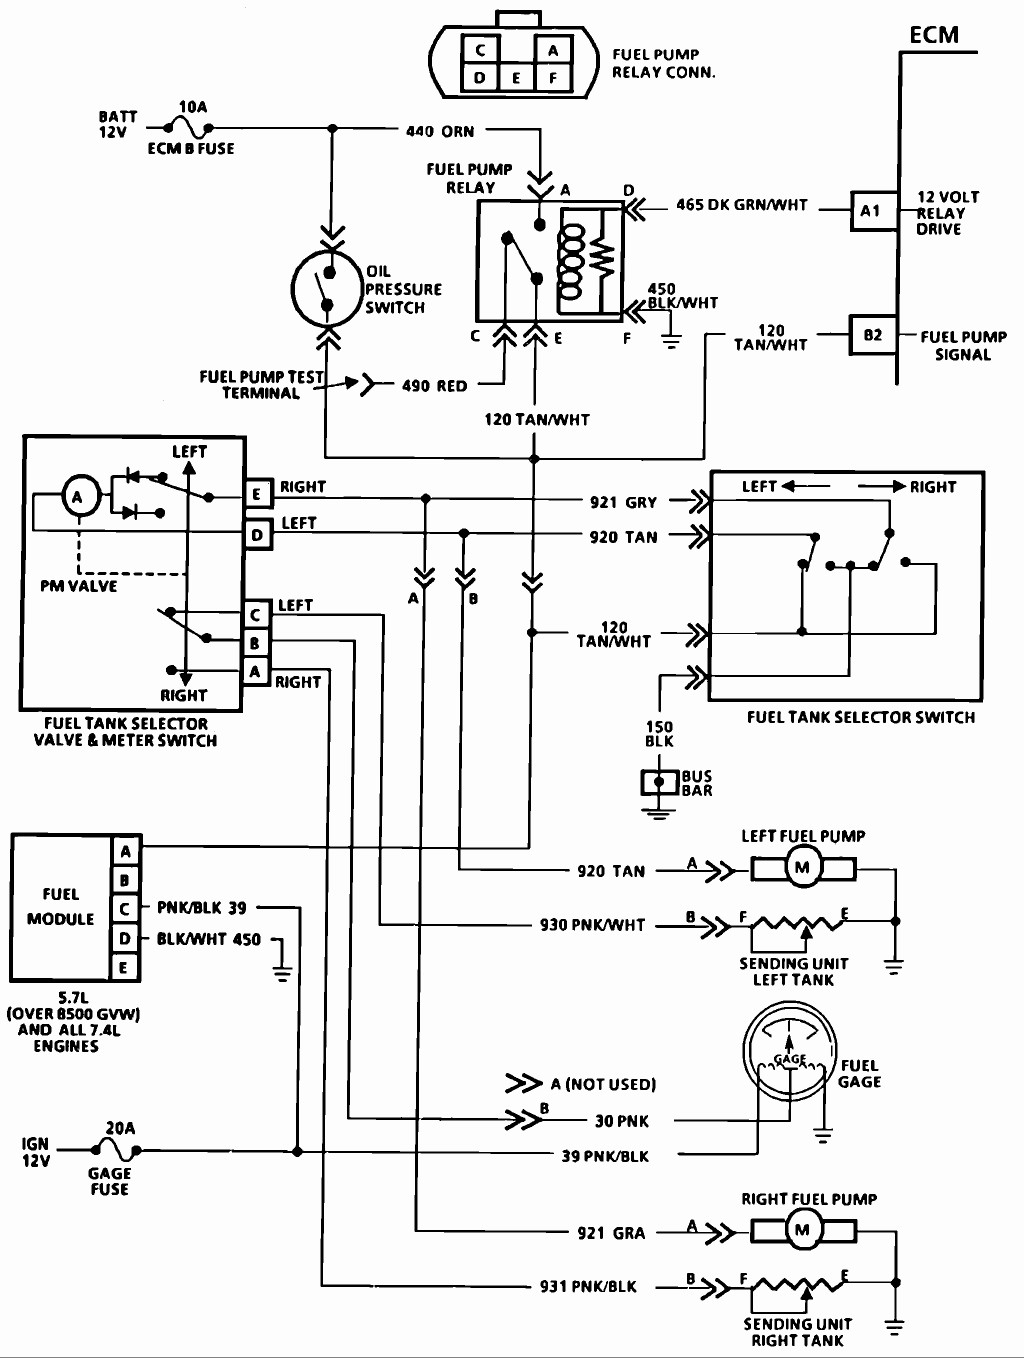 1988 Chevy S10 Fuel Pump Wiring Diagram Electrical Drawing 88 Wire Center U2022 Rh Bleongroup Co 1998